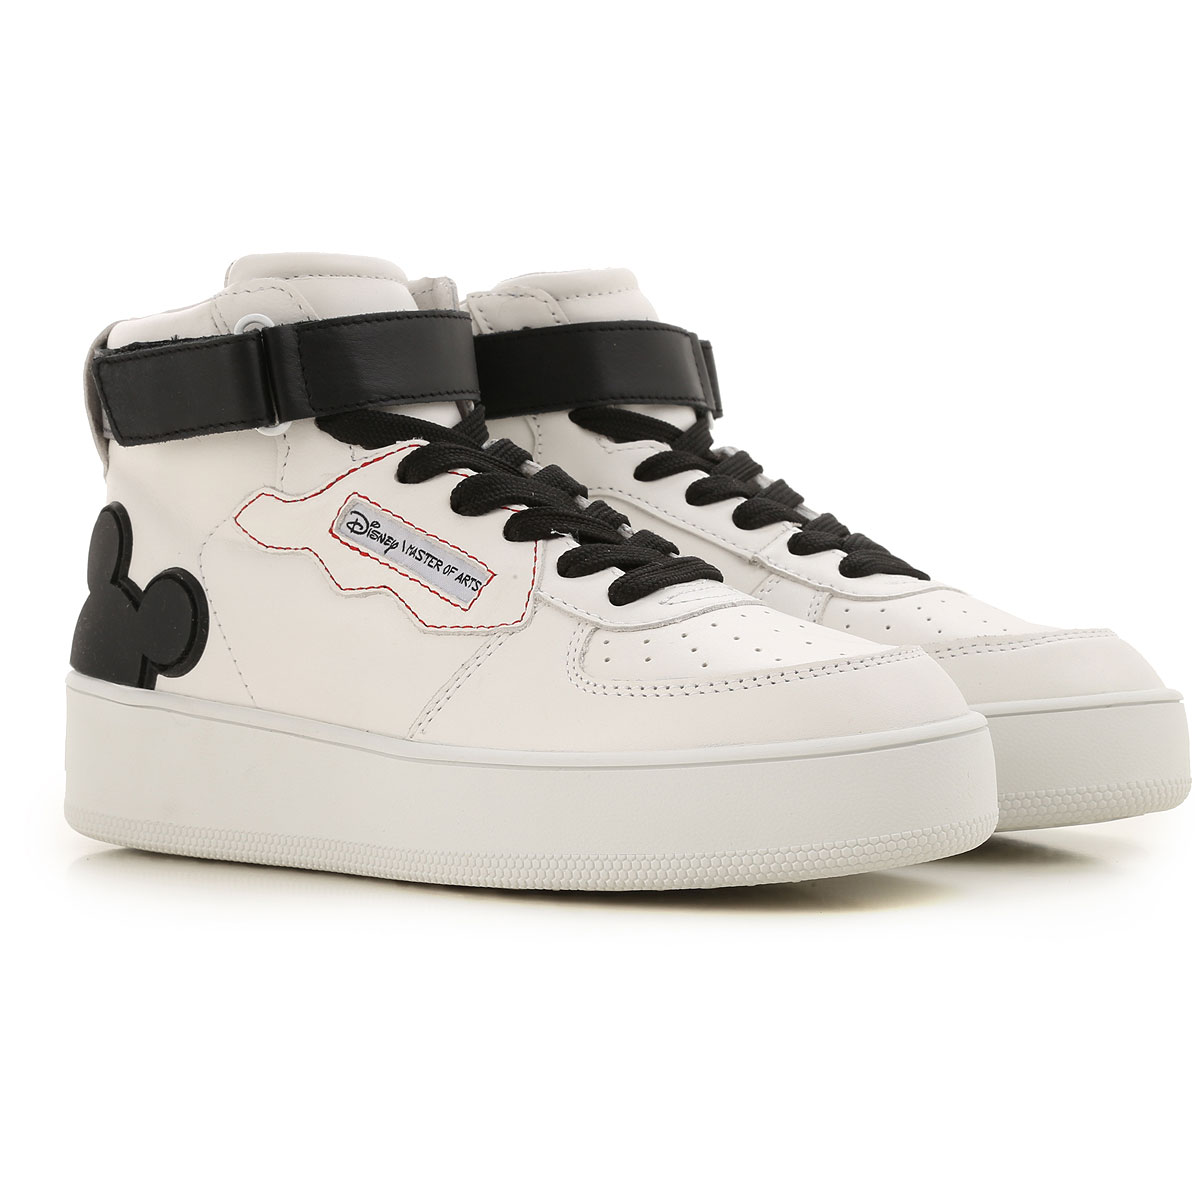 Moa Master of Arts Sneakers for Women On Sale, White, Leather, 2019, 10 6 7 8 9